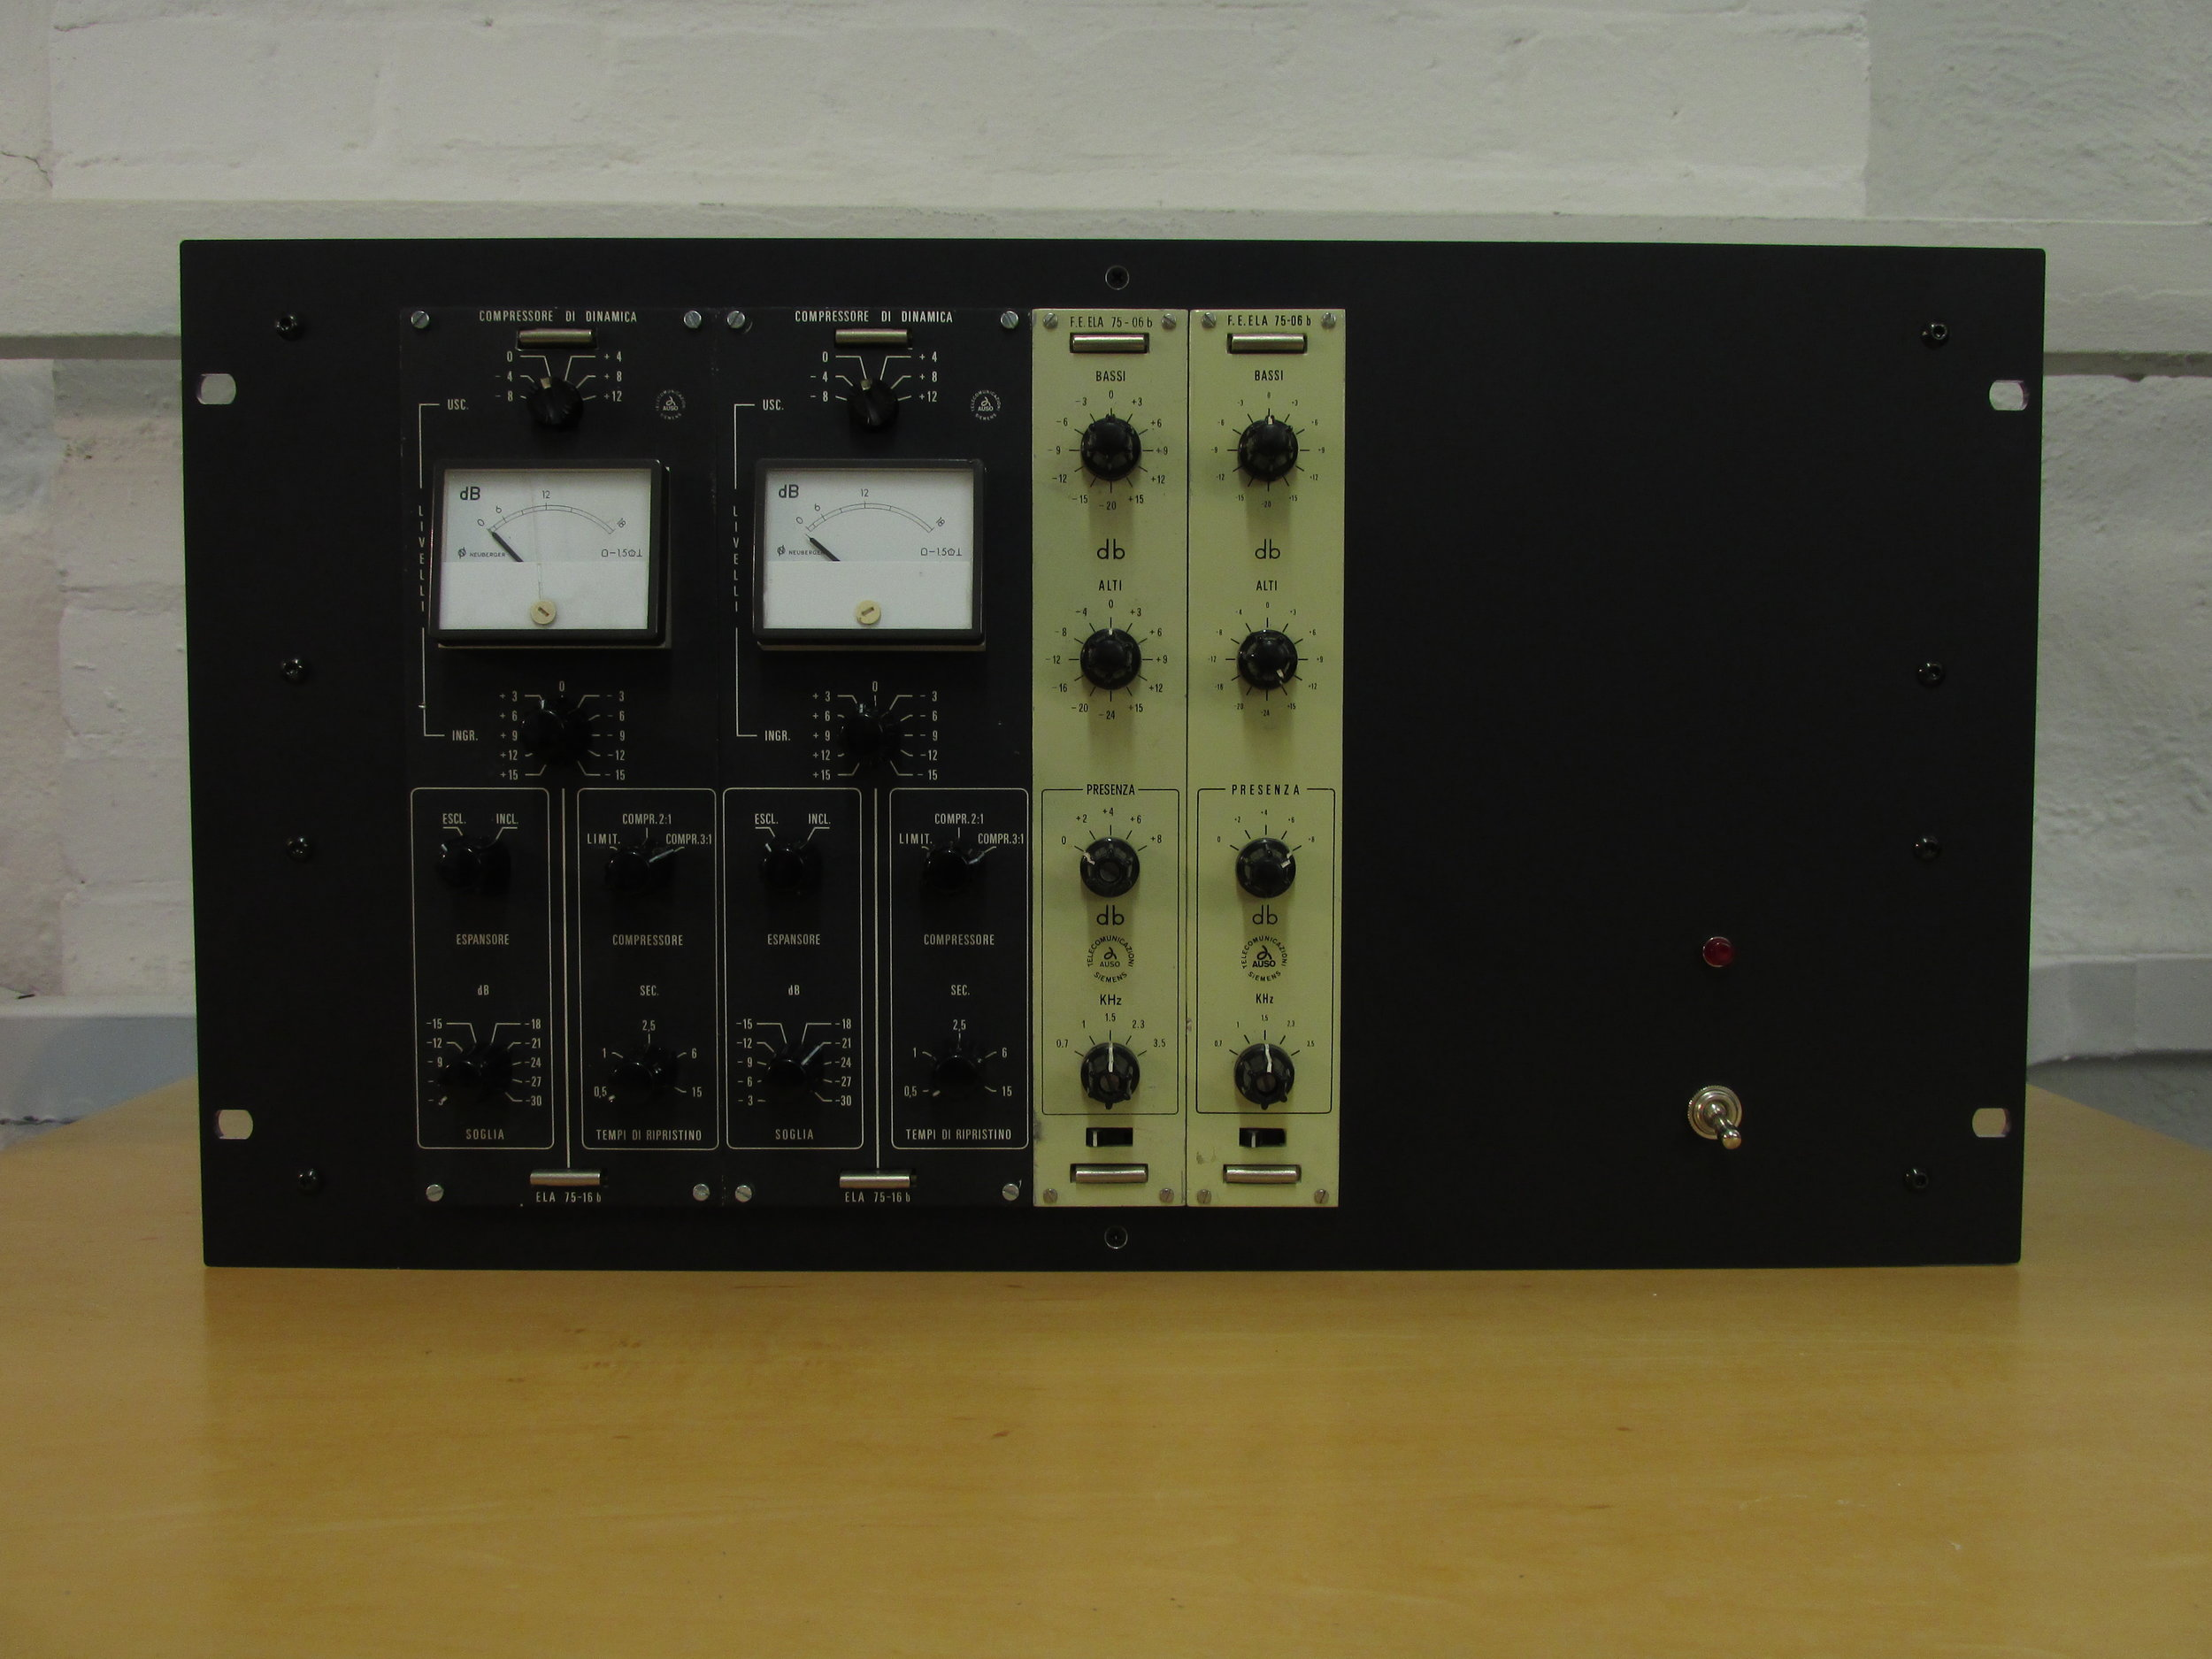 Vintage Auso mastering level dynamics and eq modules. Racked up in a custom chassis with internal power supply and in / out connectors.